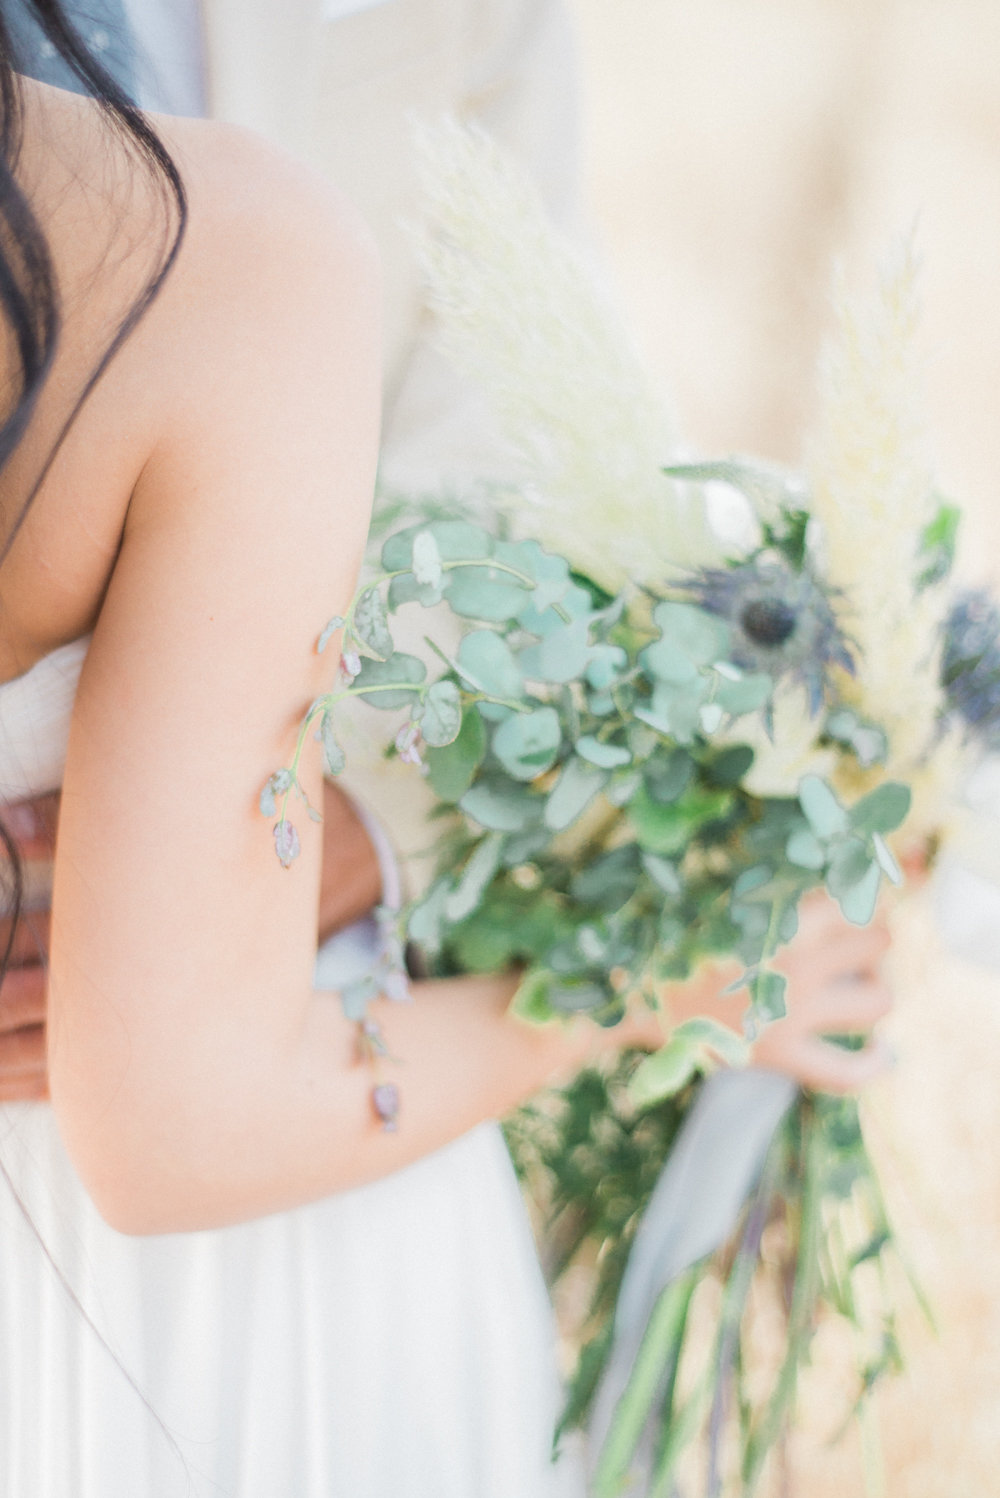 wedding flowers - photo by Anya Kernes Photography http://ruffledblog.com/organic-wedding-inspiration-with-shades-of-blue